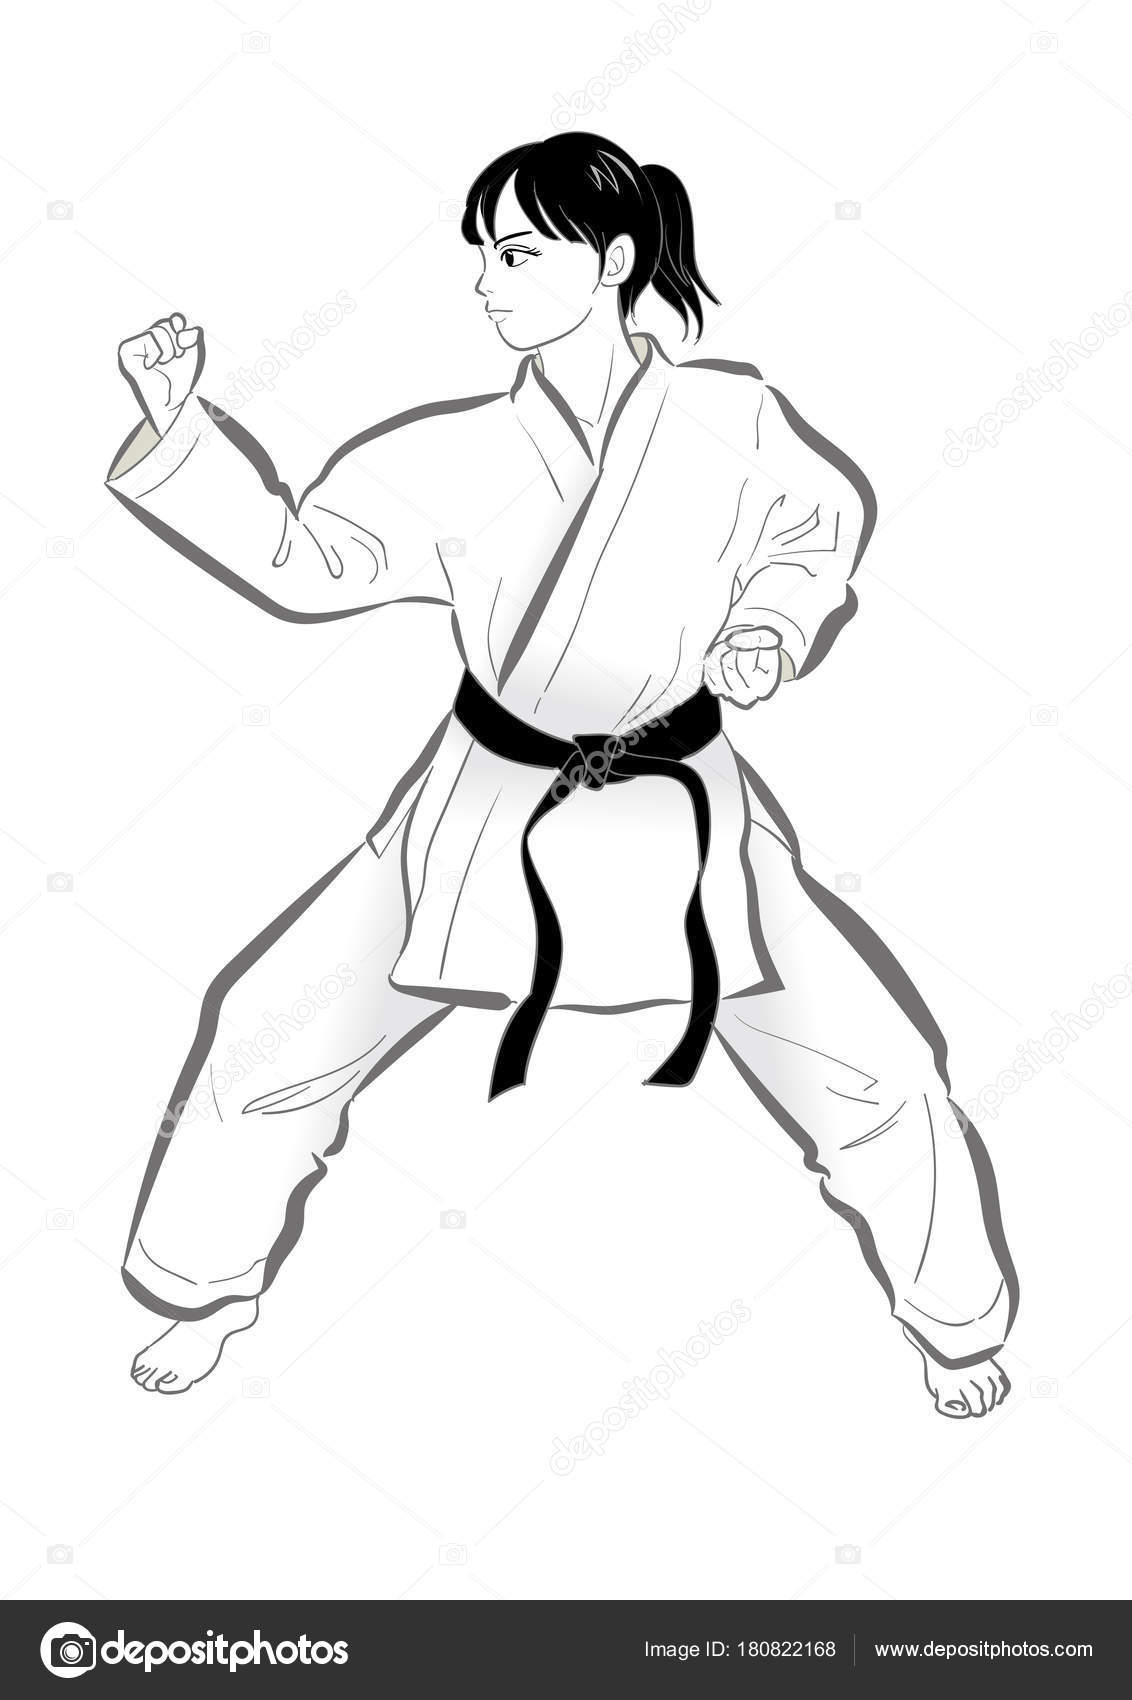 Karate Pose Vector Material Japanese Culture